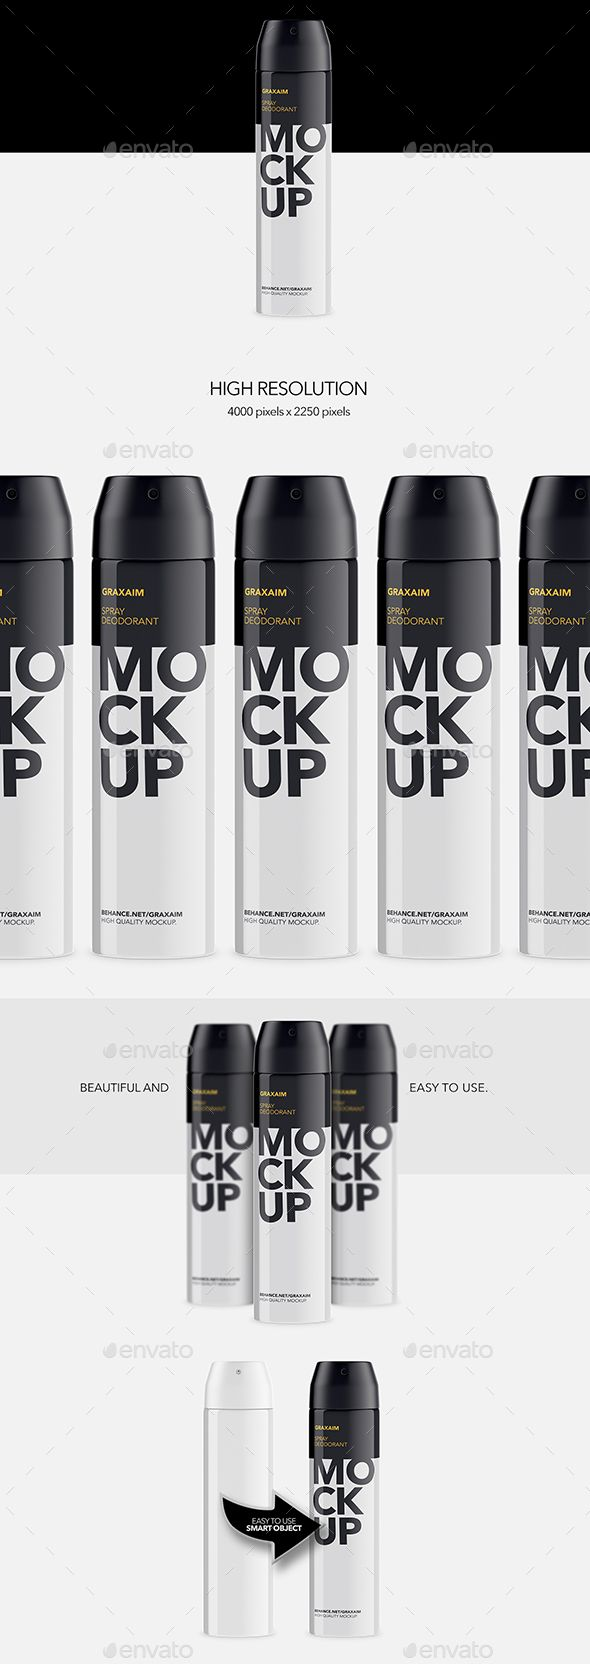 Metallic Spray Bottle Deodorant  Mockup — Photoshop PSD #exclusive #deodorant • Available here → https://graphicriver.net/item/metallic-spray-bottle-deodorant-mockup/19220063?ref=pxcr